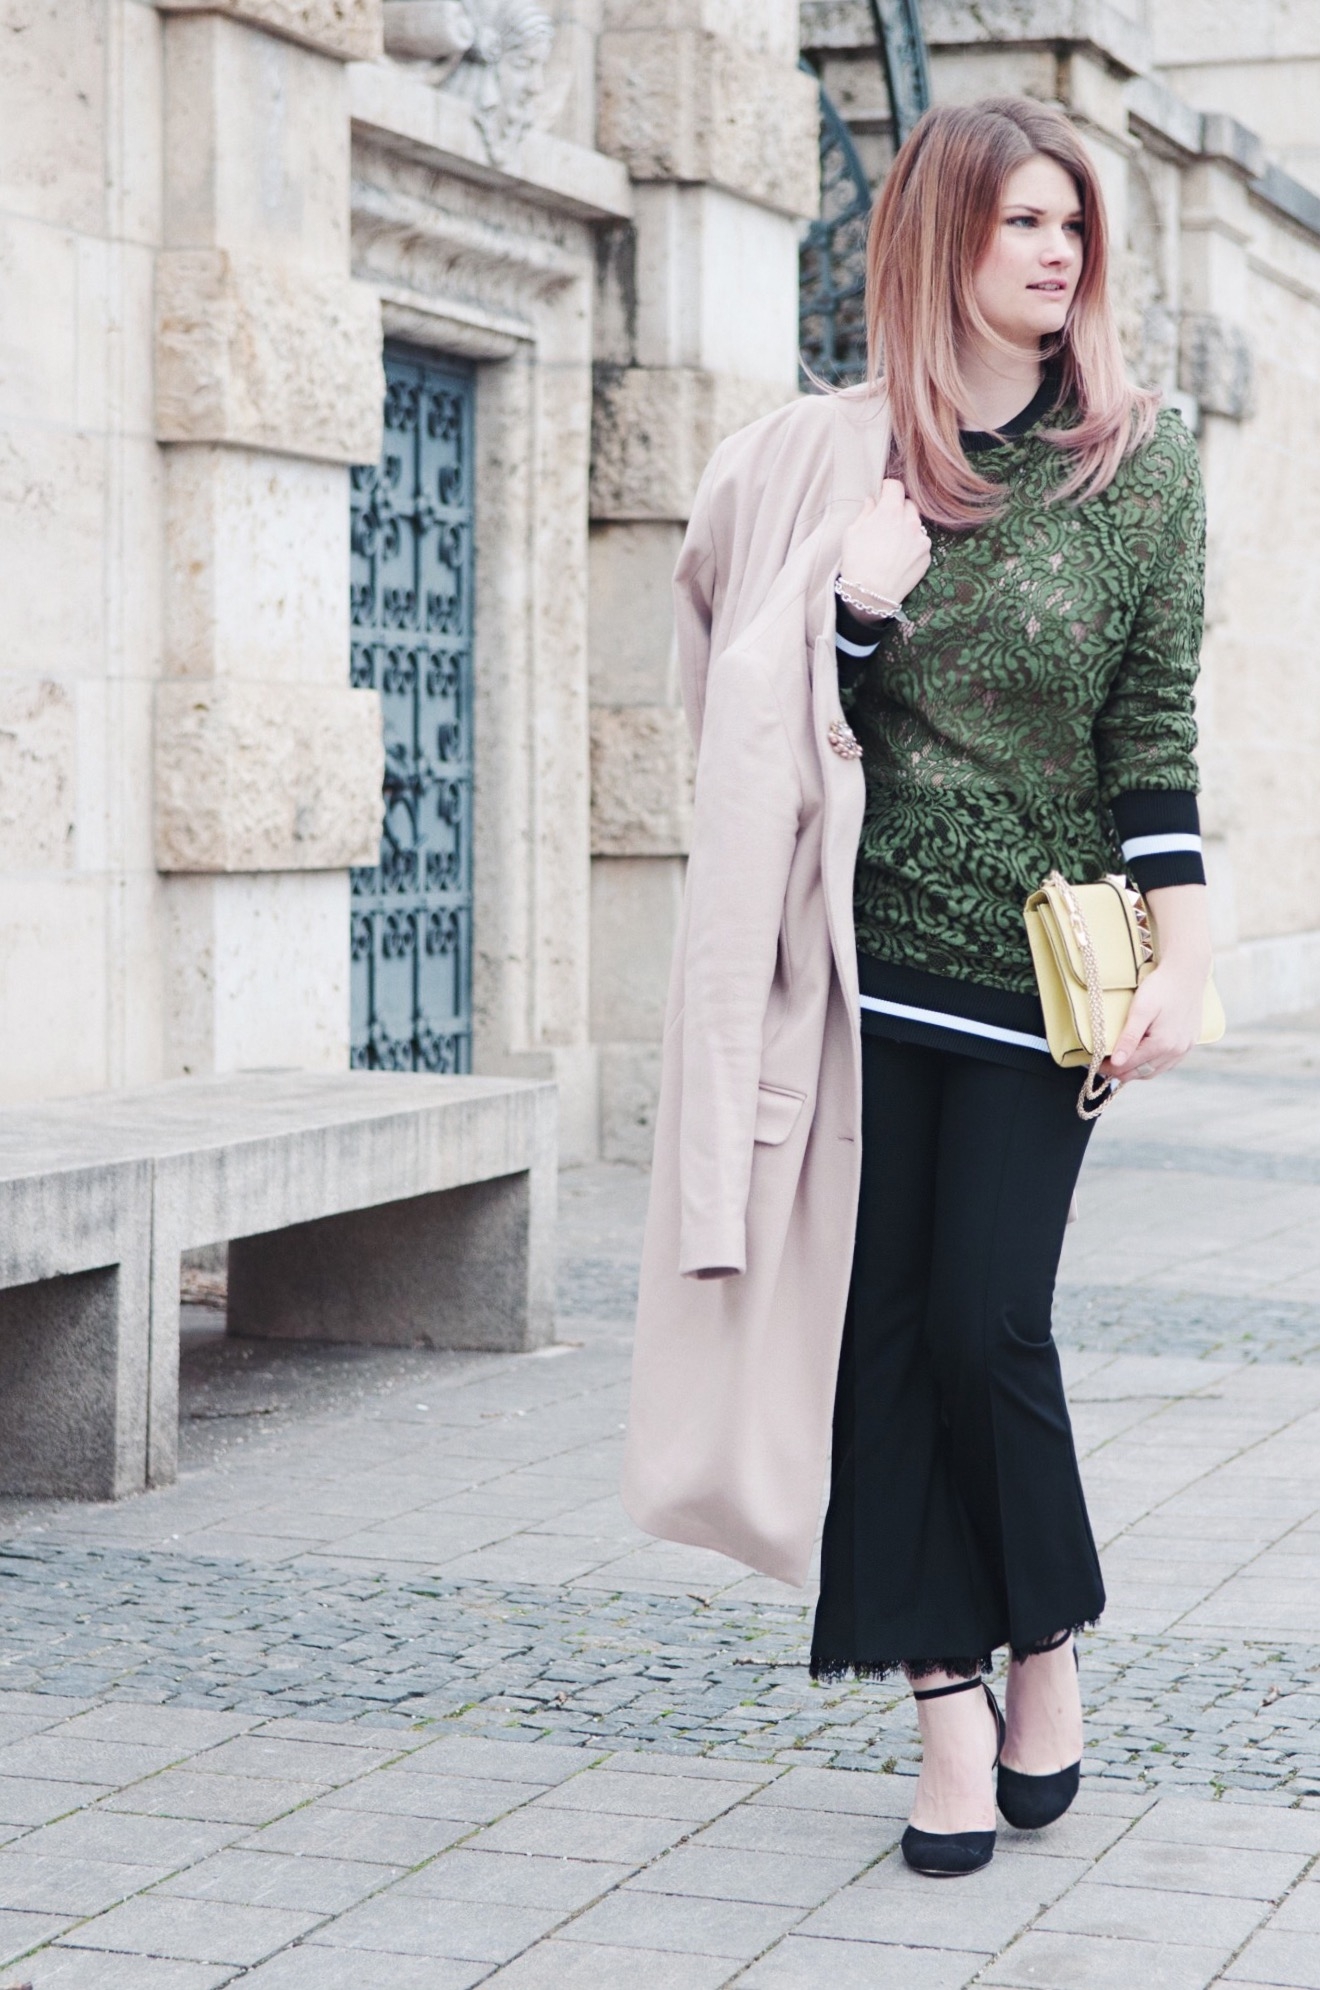 Mantel, Zara, Coat, Pumps, Riemchenpumps, Schuhe, Valentino, Rockstud, Frühling, Greenery, Spitze, Lace, Sweatshirt, Hairstyle, Pastell, Culottes, Muenchen, Munich, Pineapples and Pumps, Fashion Blog, Blogger, Modeblogger, National Museum, Kopfsteinpflaster, Mac Cosmetics